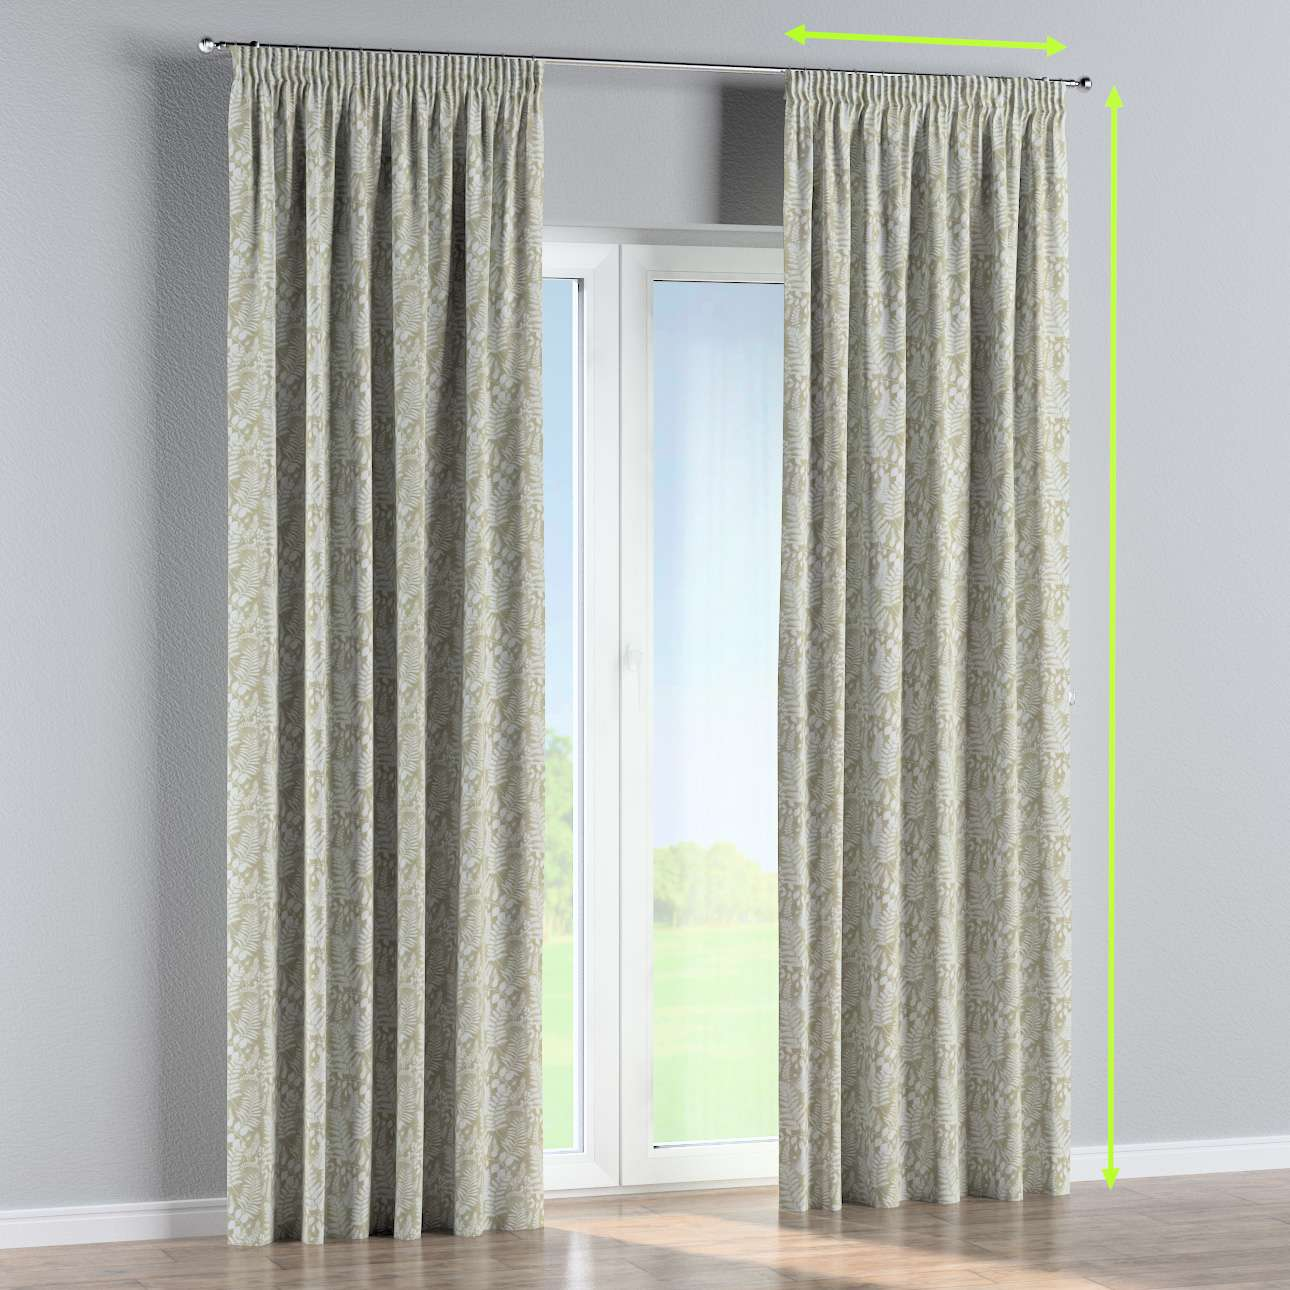 Pencil pleat curtain in collection Pastel Forest, fabric: 142-50